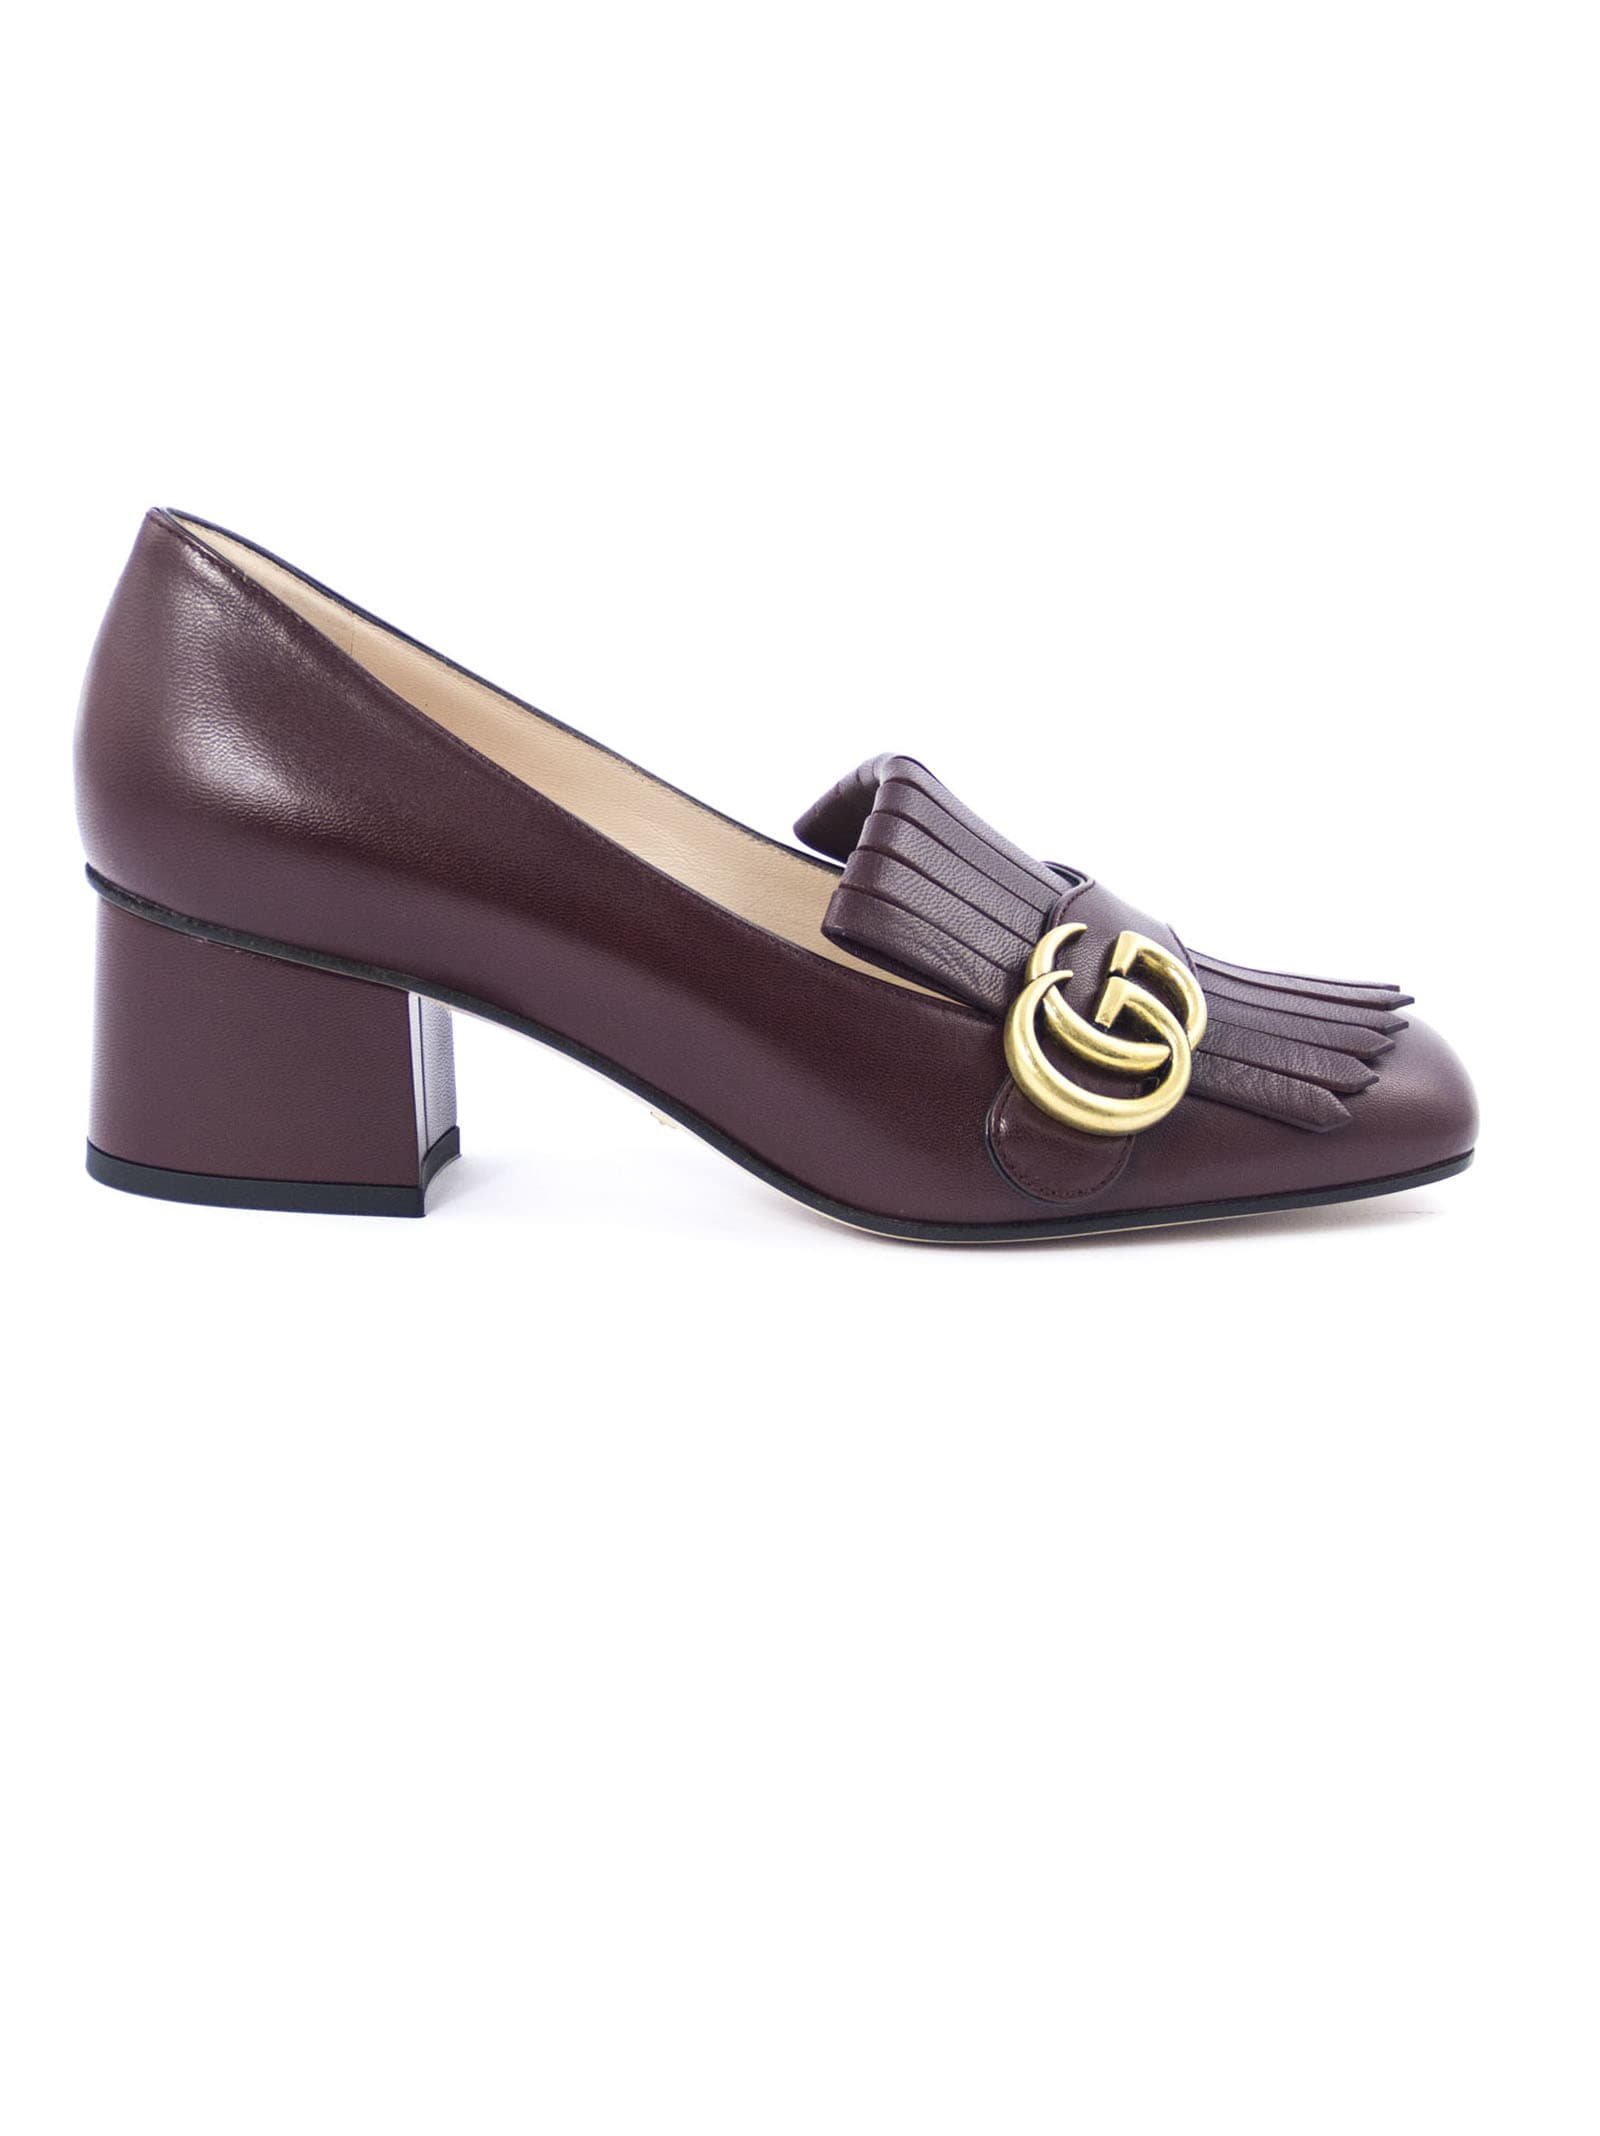 Gucci Bordeaux Leather Mid-Heel Pump In Bordo